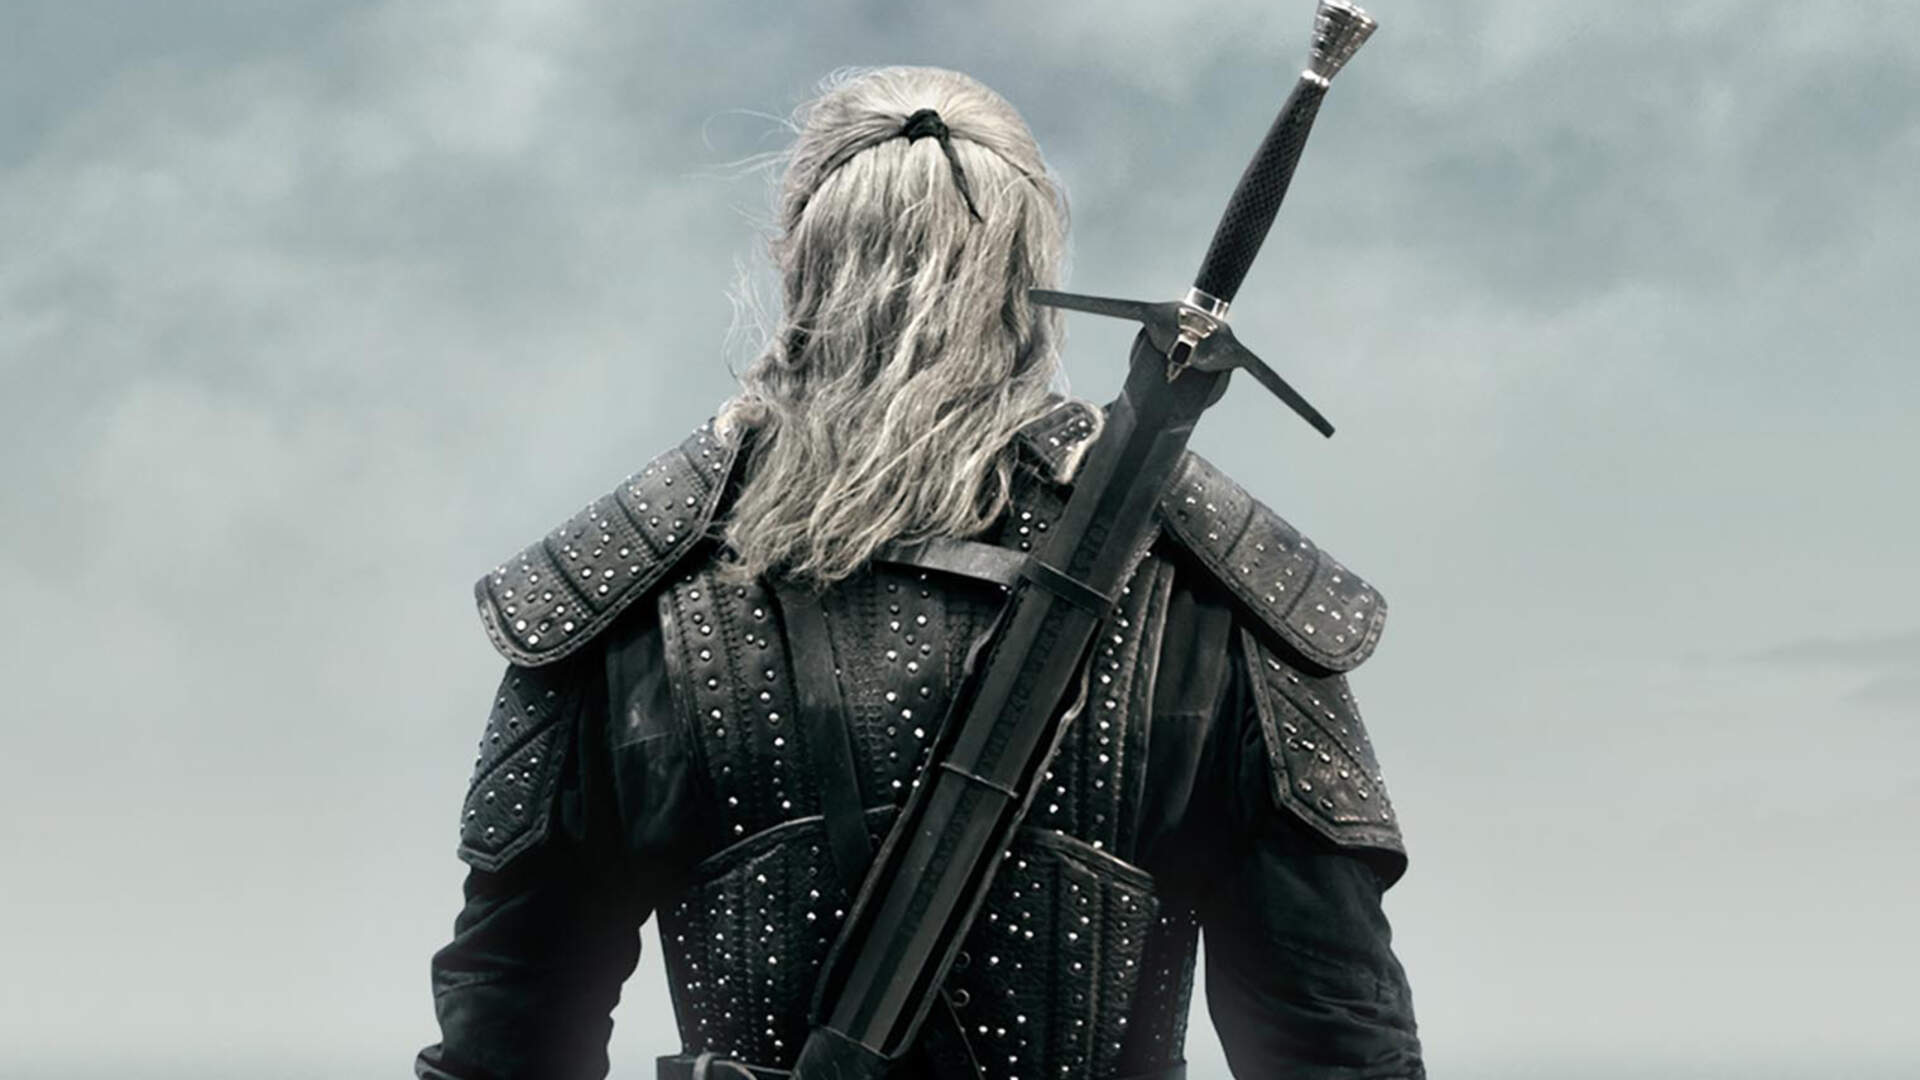 Netflix Might Have Leaked The Witcher Series' Premiere Date